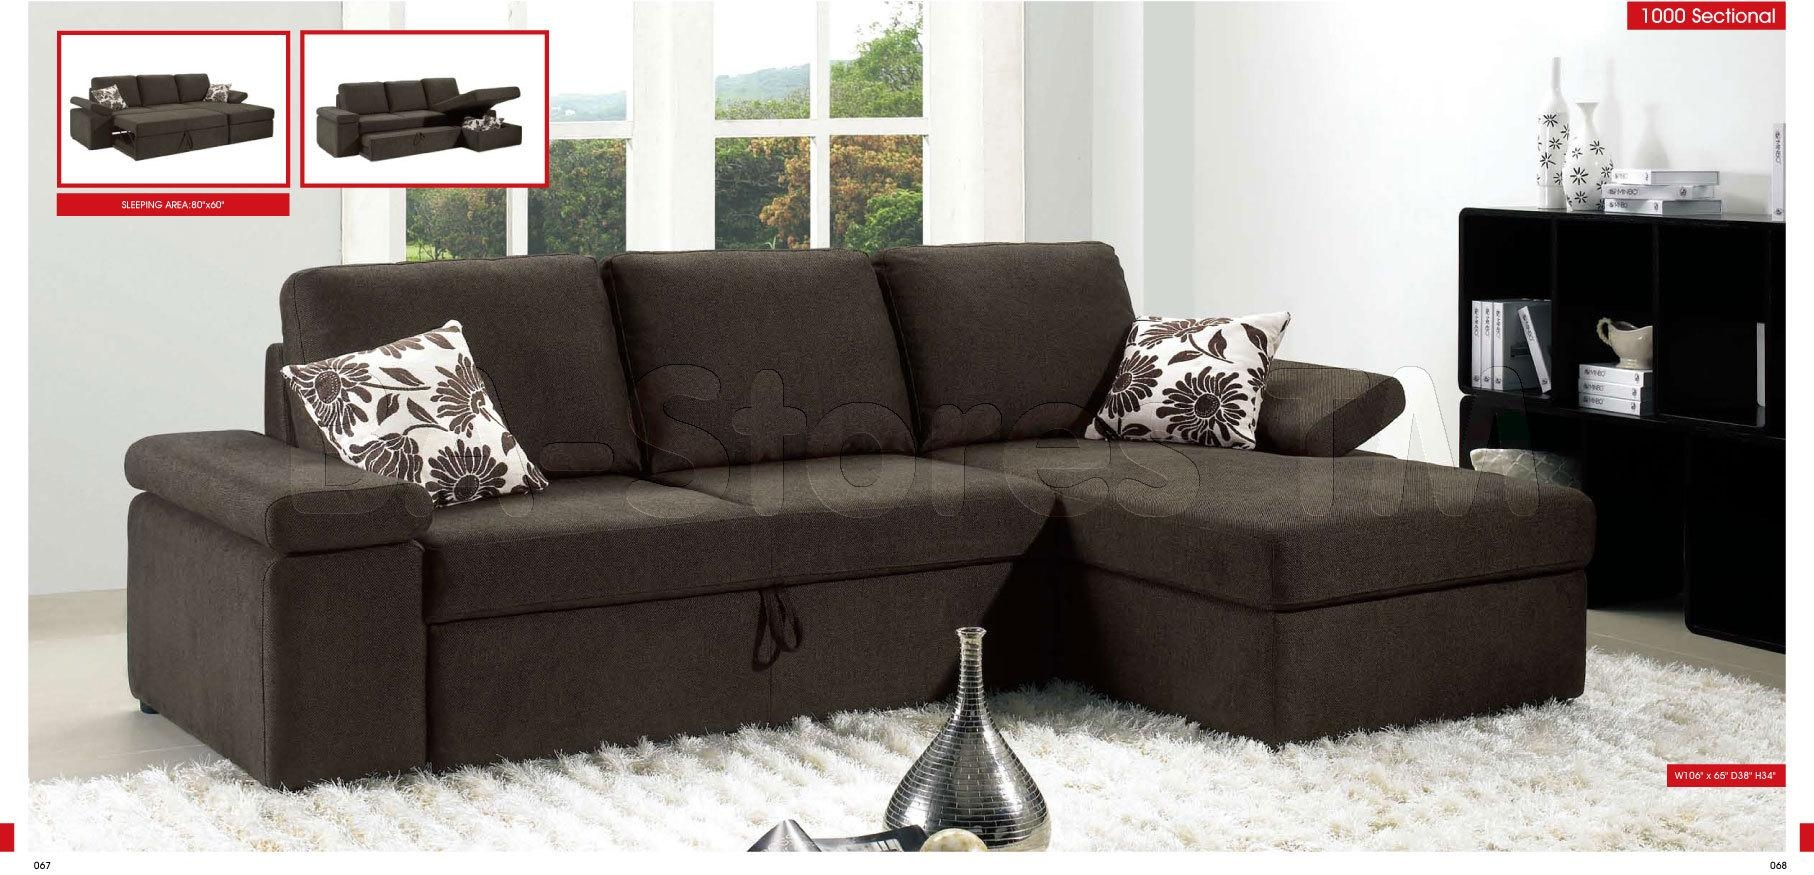 Sofas Center : Sleeper Sofas Value City Furniture Frightening With City Sofa Beds (Image 18 of 20)